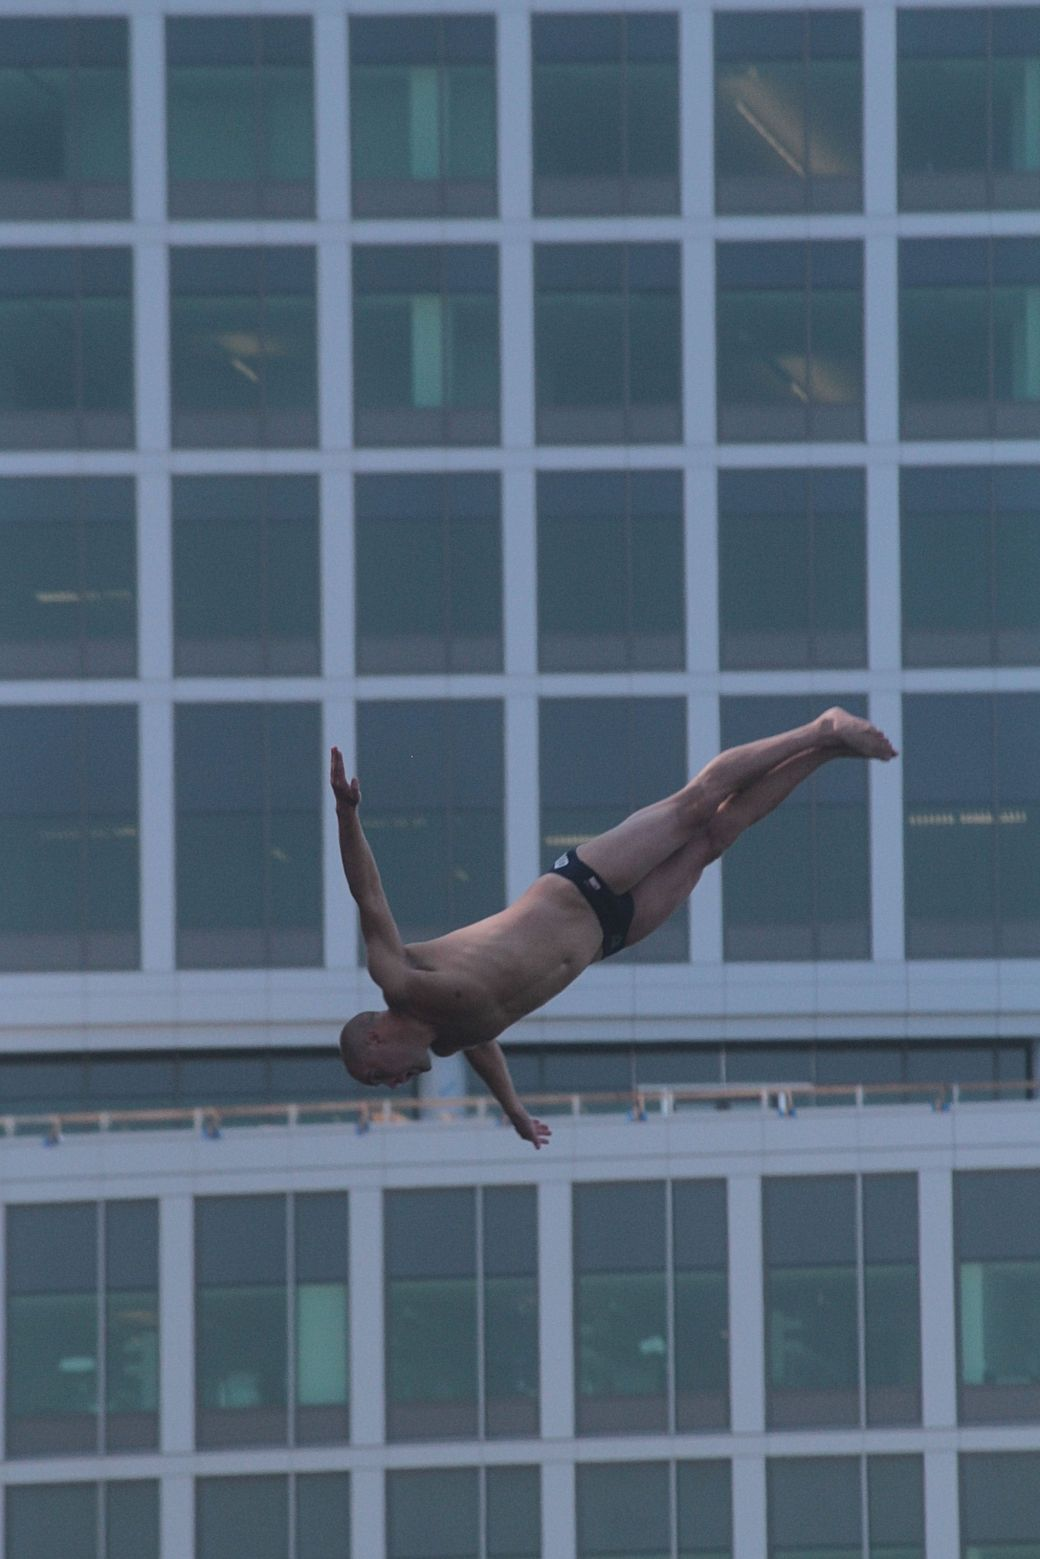 boston institute of contemporary art diving competition august 25 2013 61